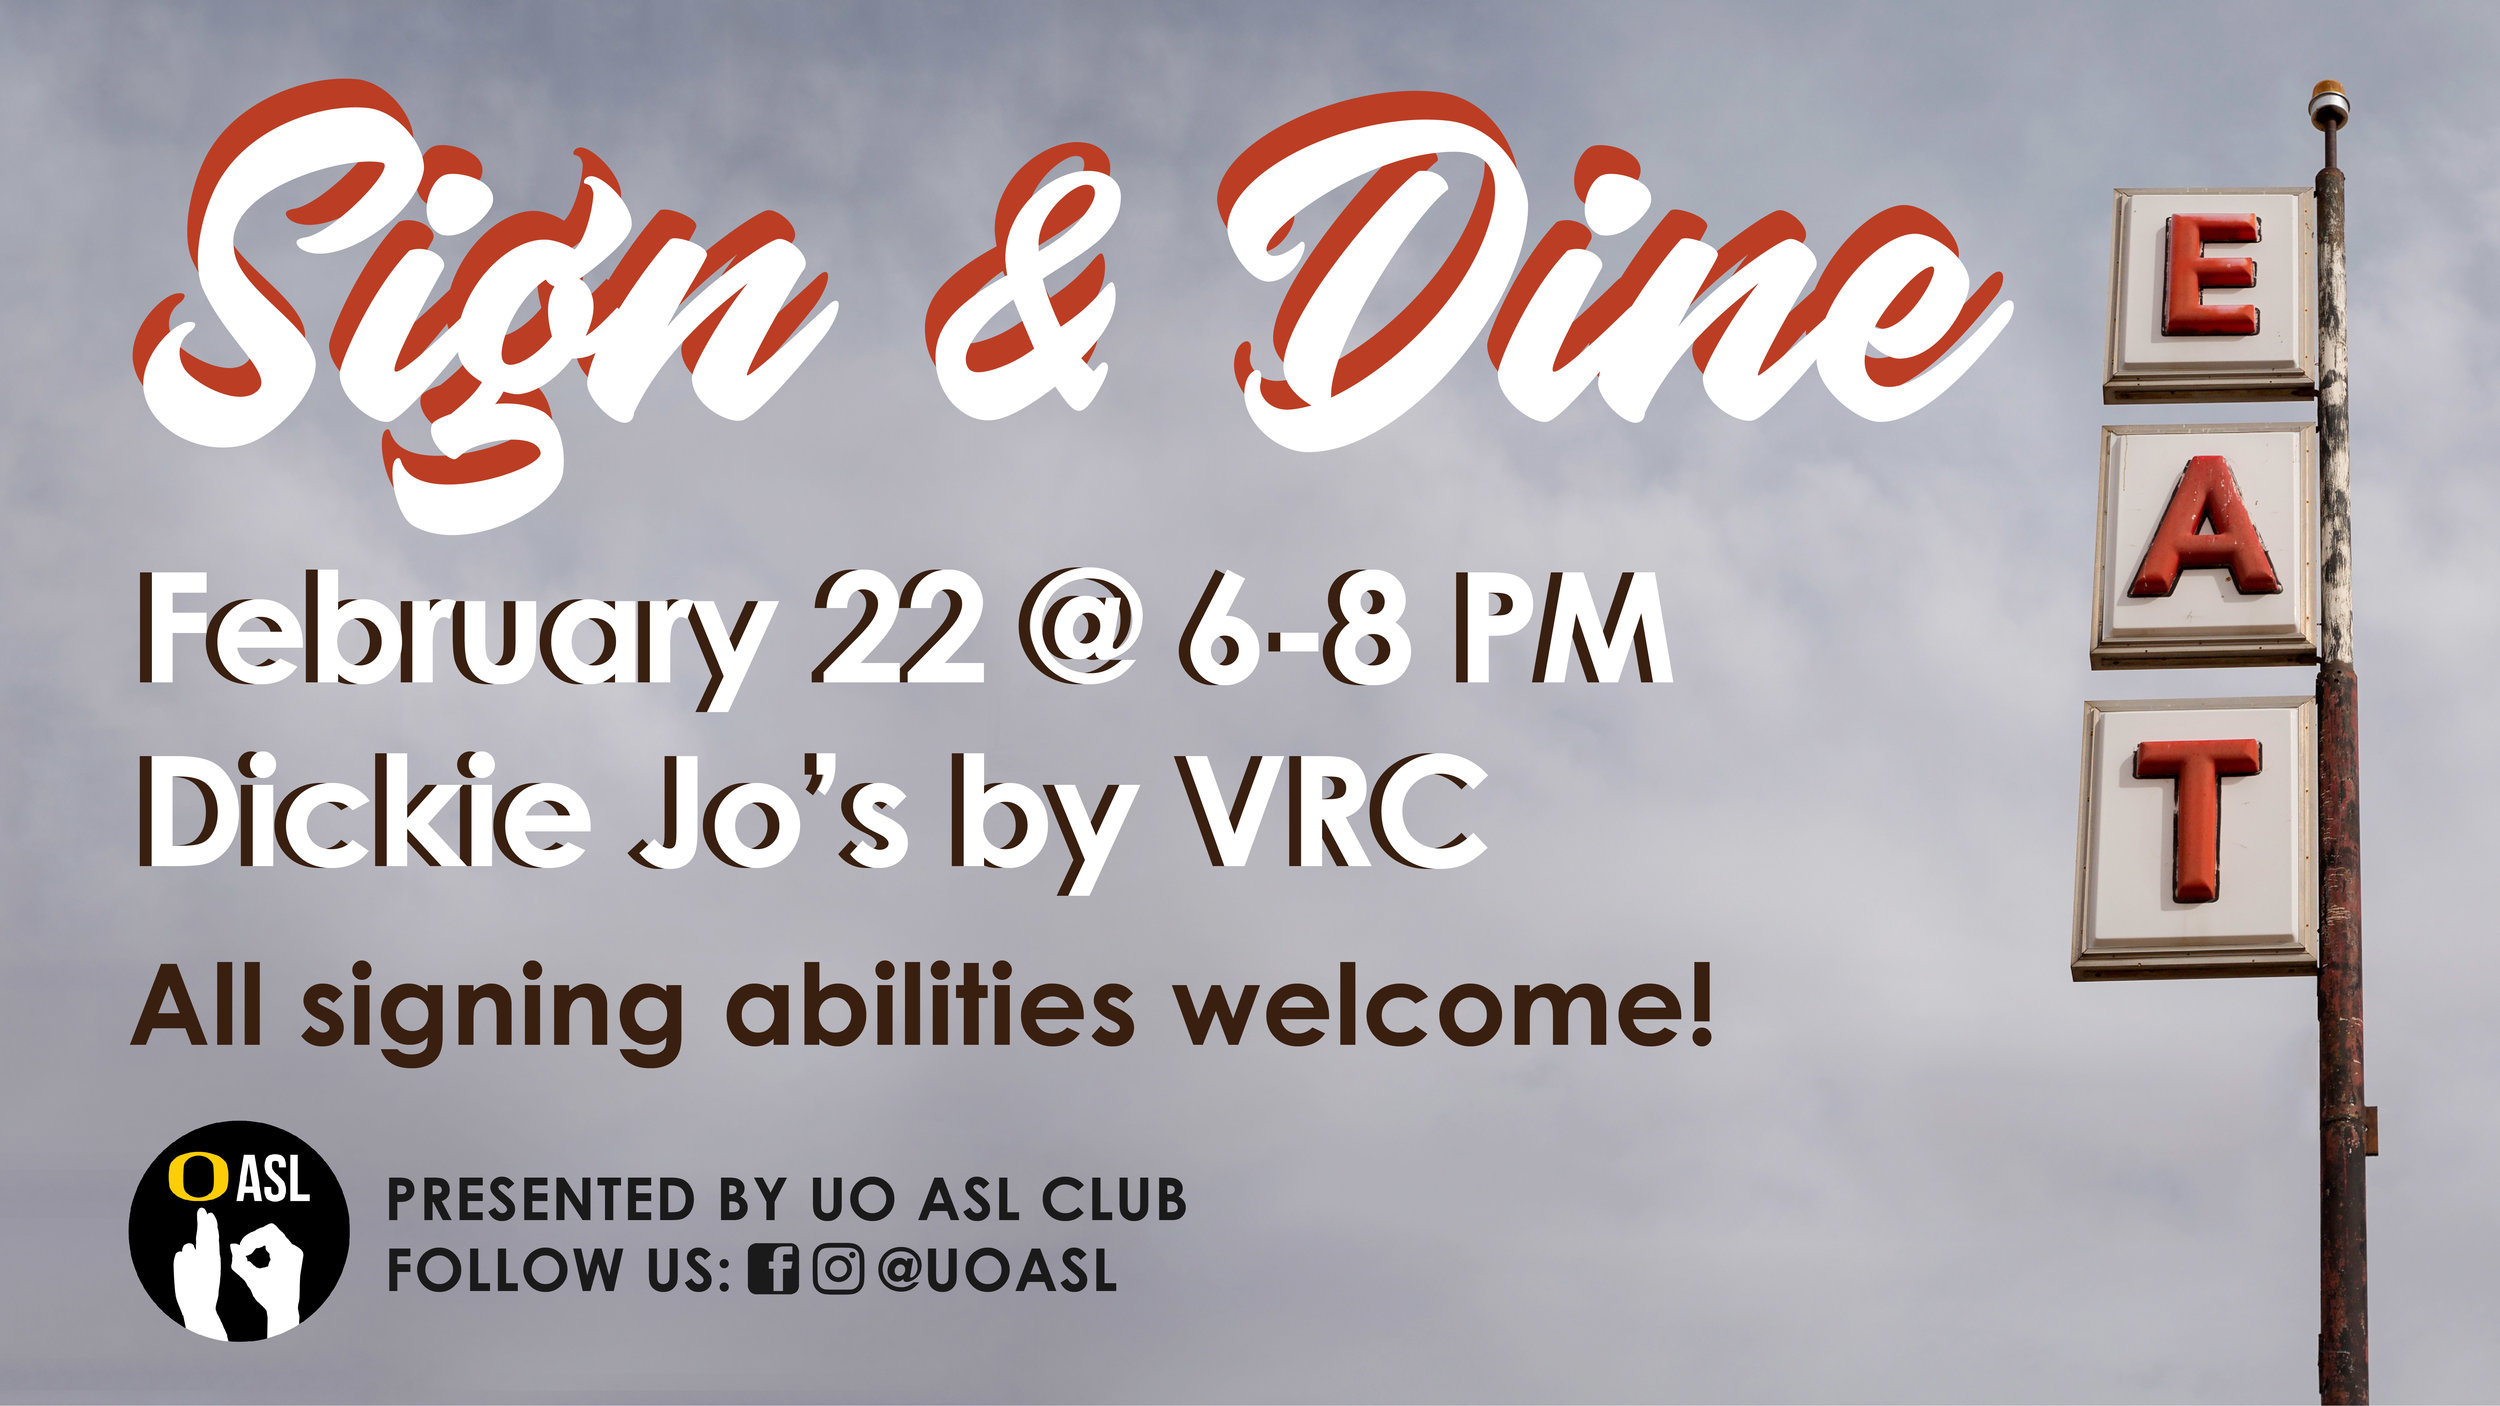 feb sign and dine 2019-01.jpg